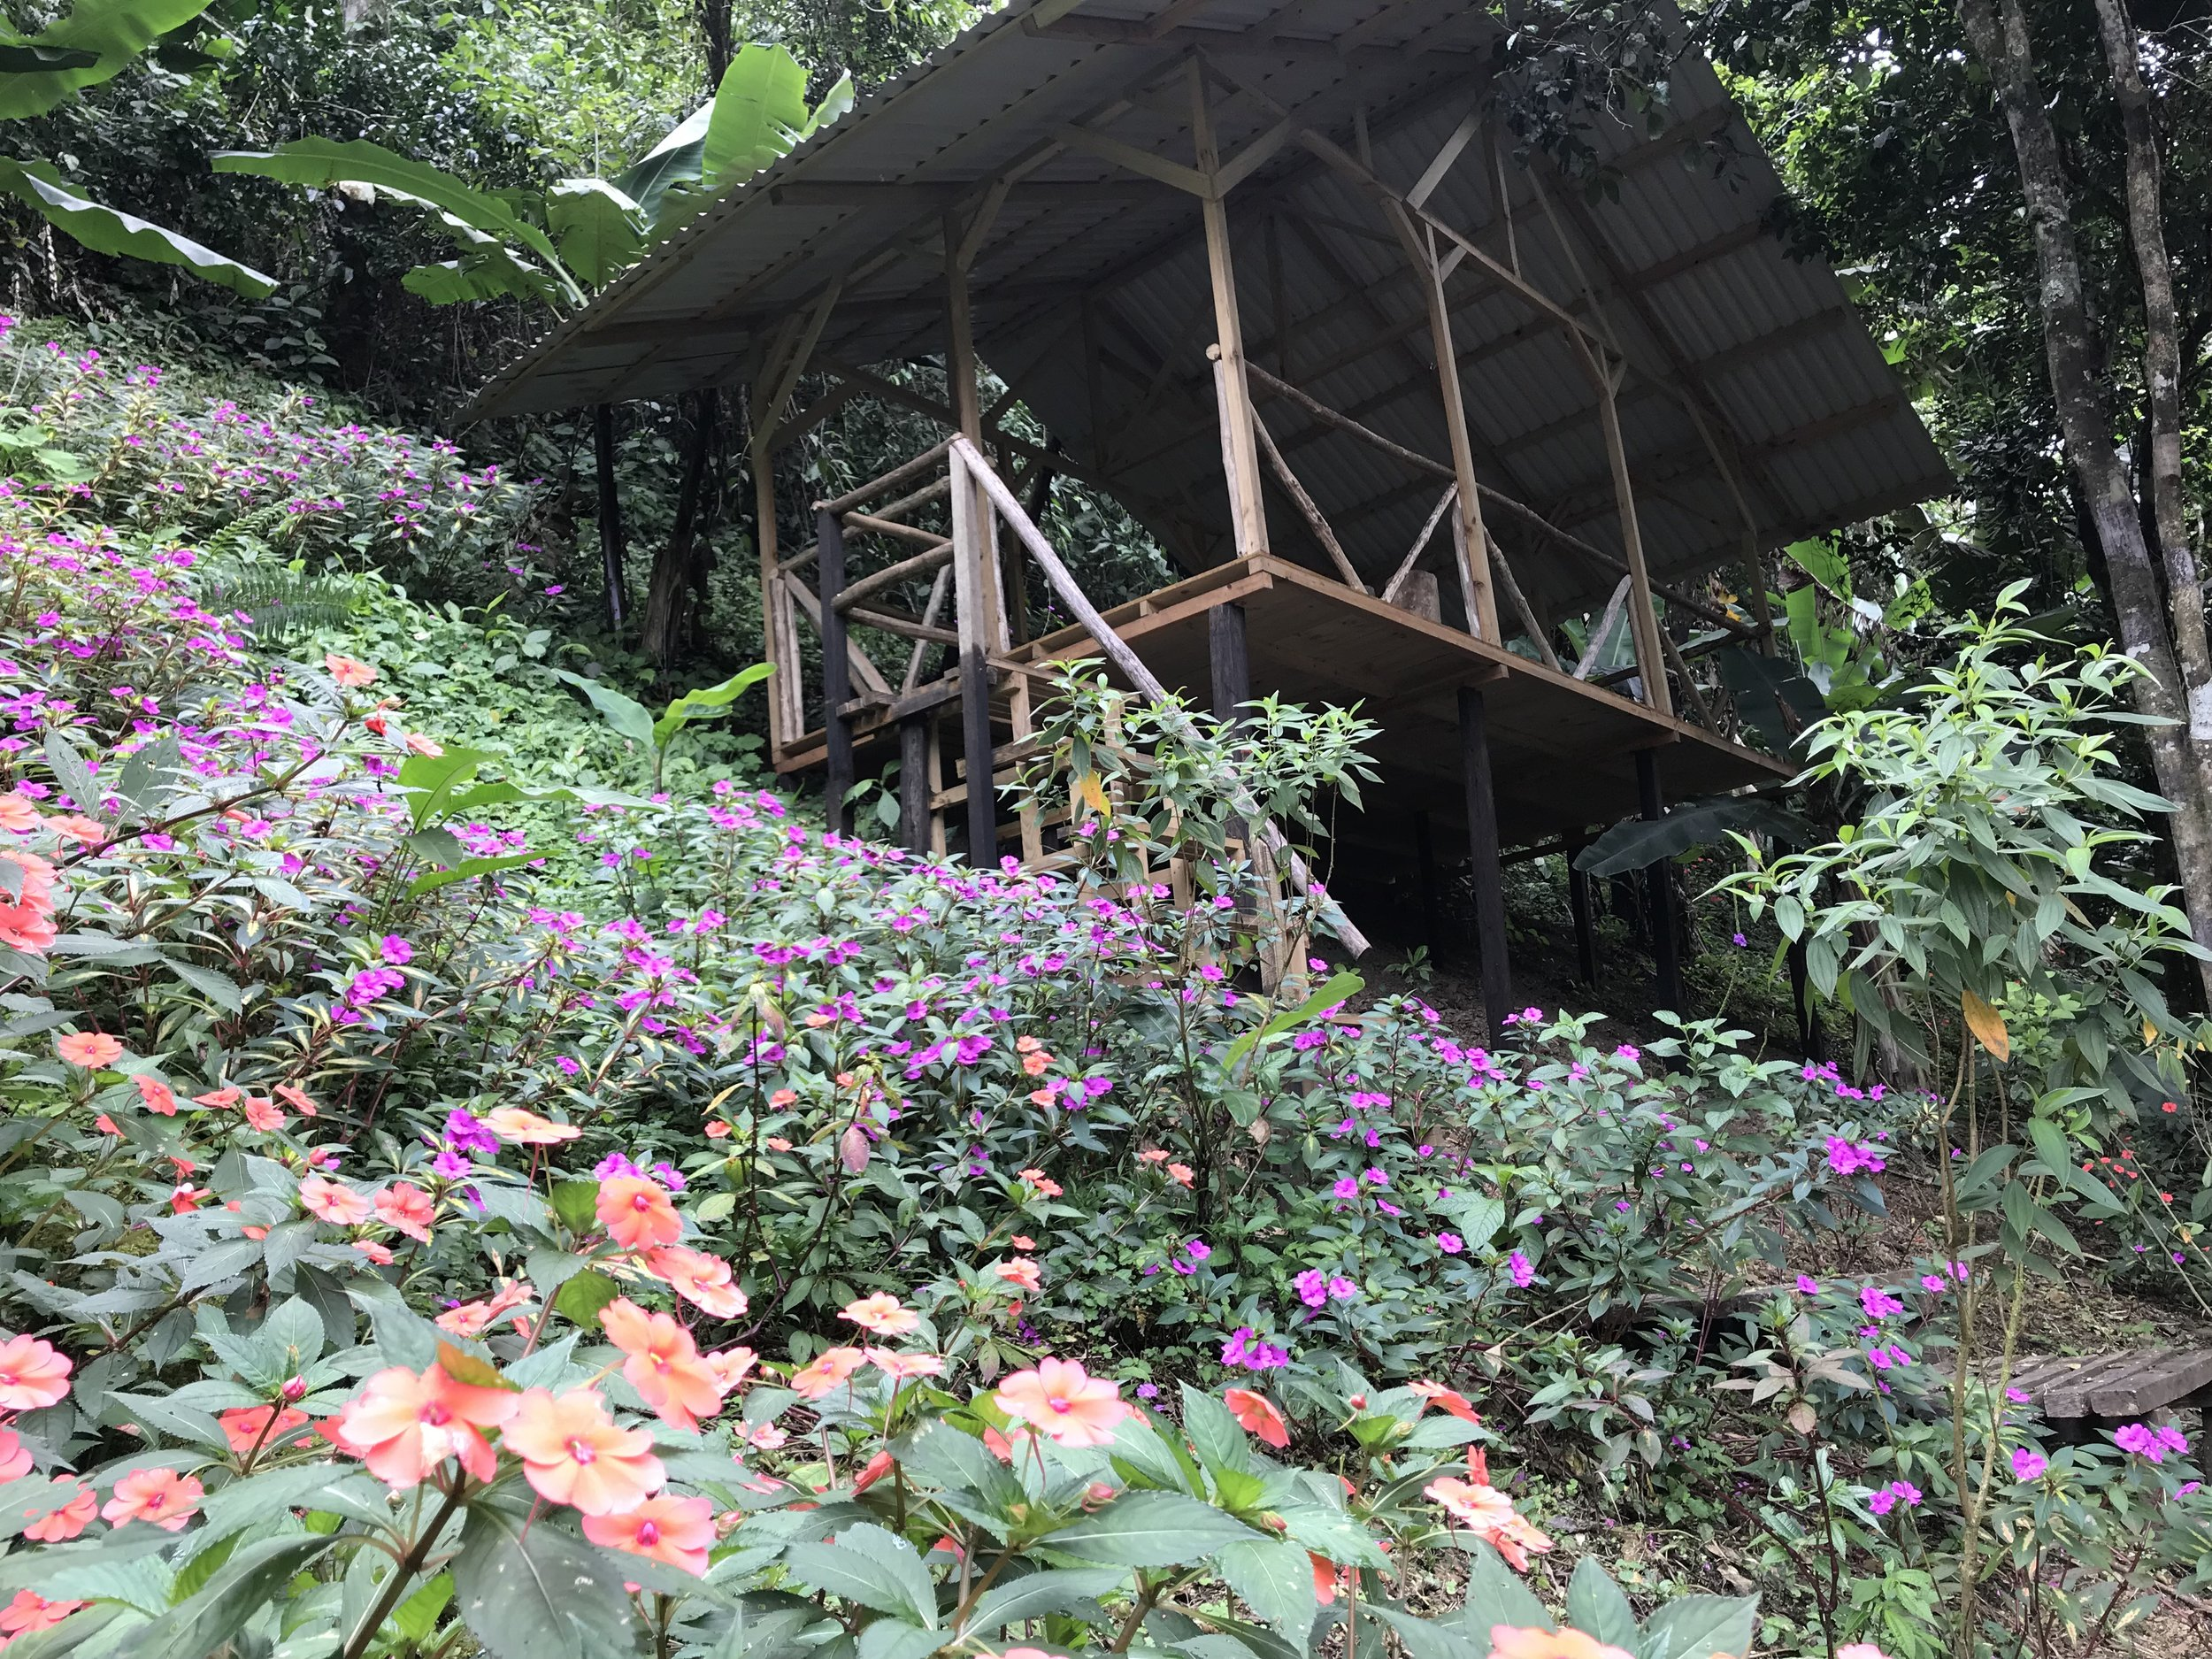 PLATFORM PAVILION #3; Stay Dry in the rain. Rate for 2 campers, sharing 1 tent; Rental for 1 Tent, 2 S  leeping Bags, 2 Foam Pads, 3 meals: $910/week or ¢514,200 colones/semana.